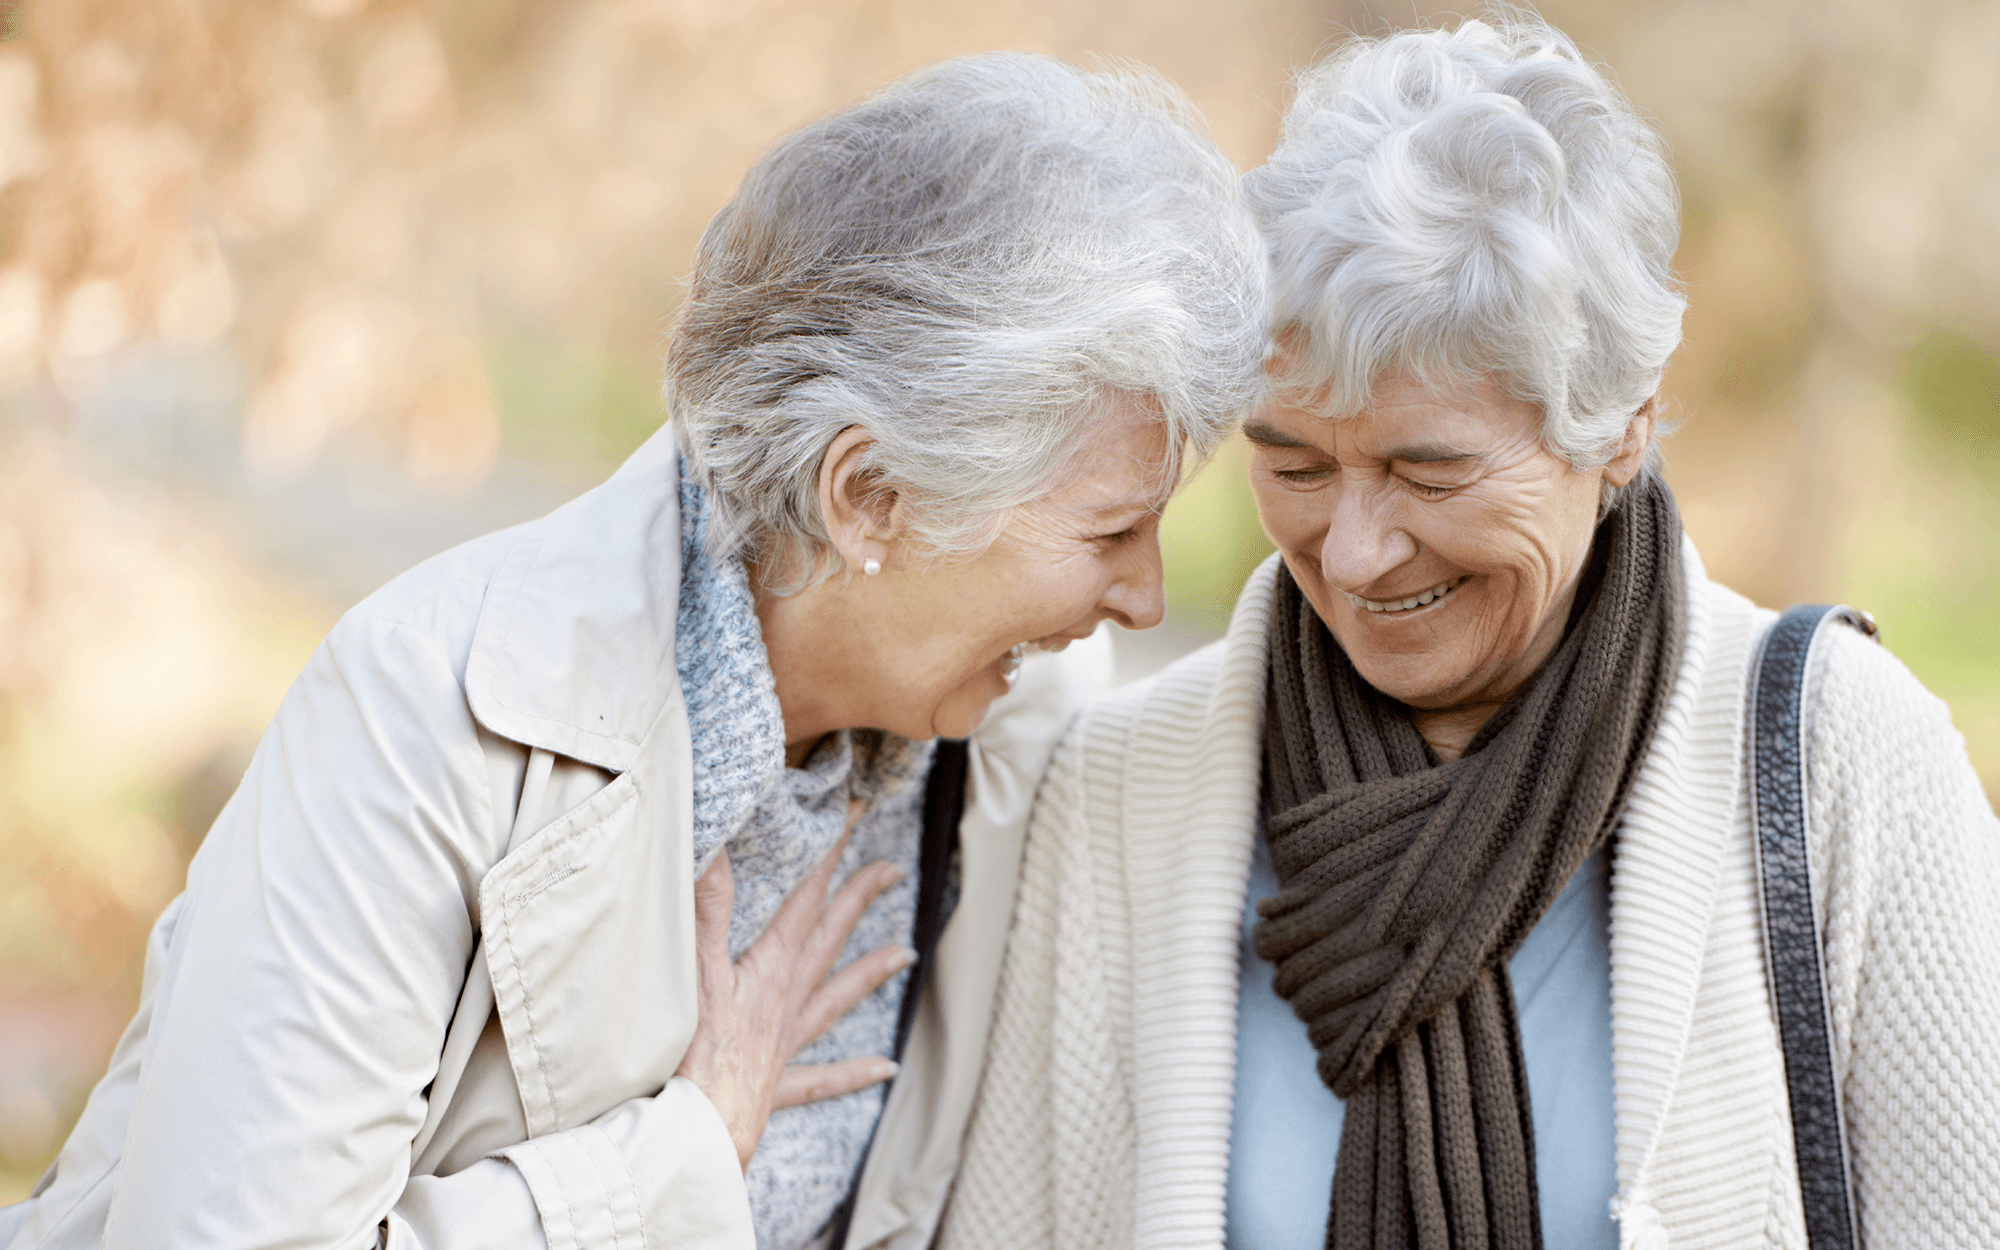 charleston senior personals Christian singles events, activities, groups in south carolina (sc) for fellowship, bible study, socializing also christian singles conferences, retreats, cruises, vacations.